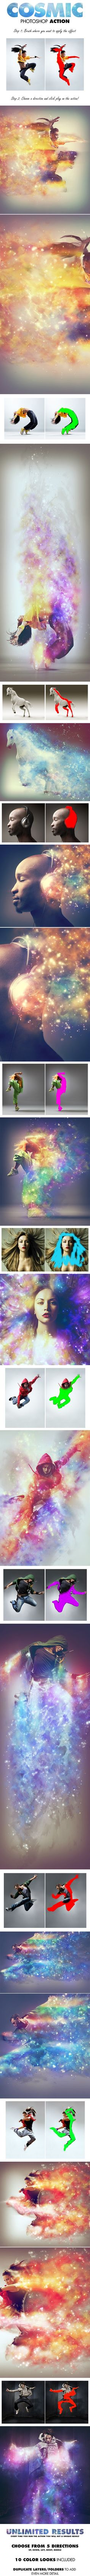 Cosmic Photoshop Action by DanielChambers on DeviantArt